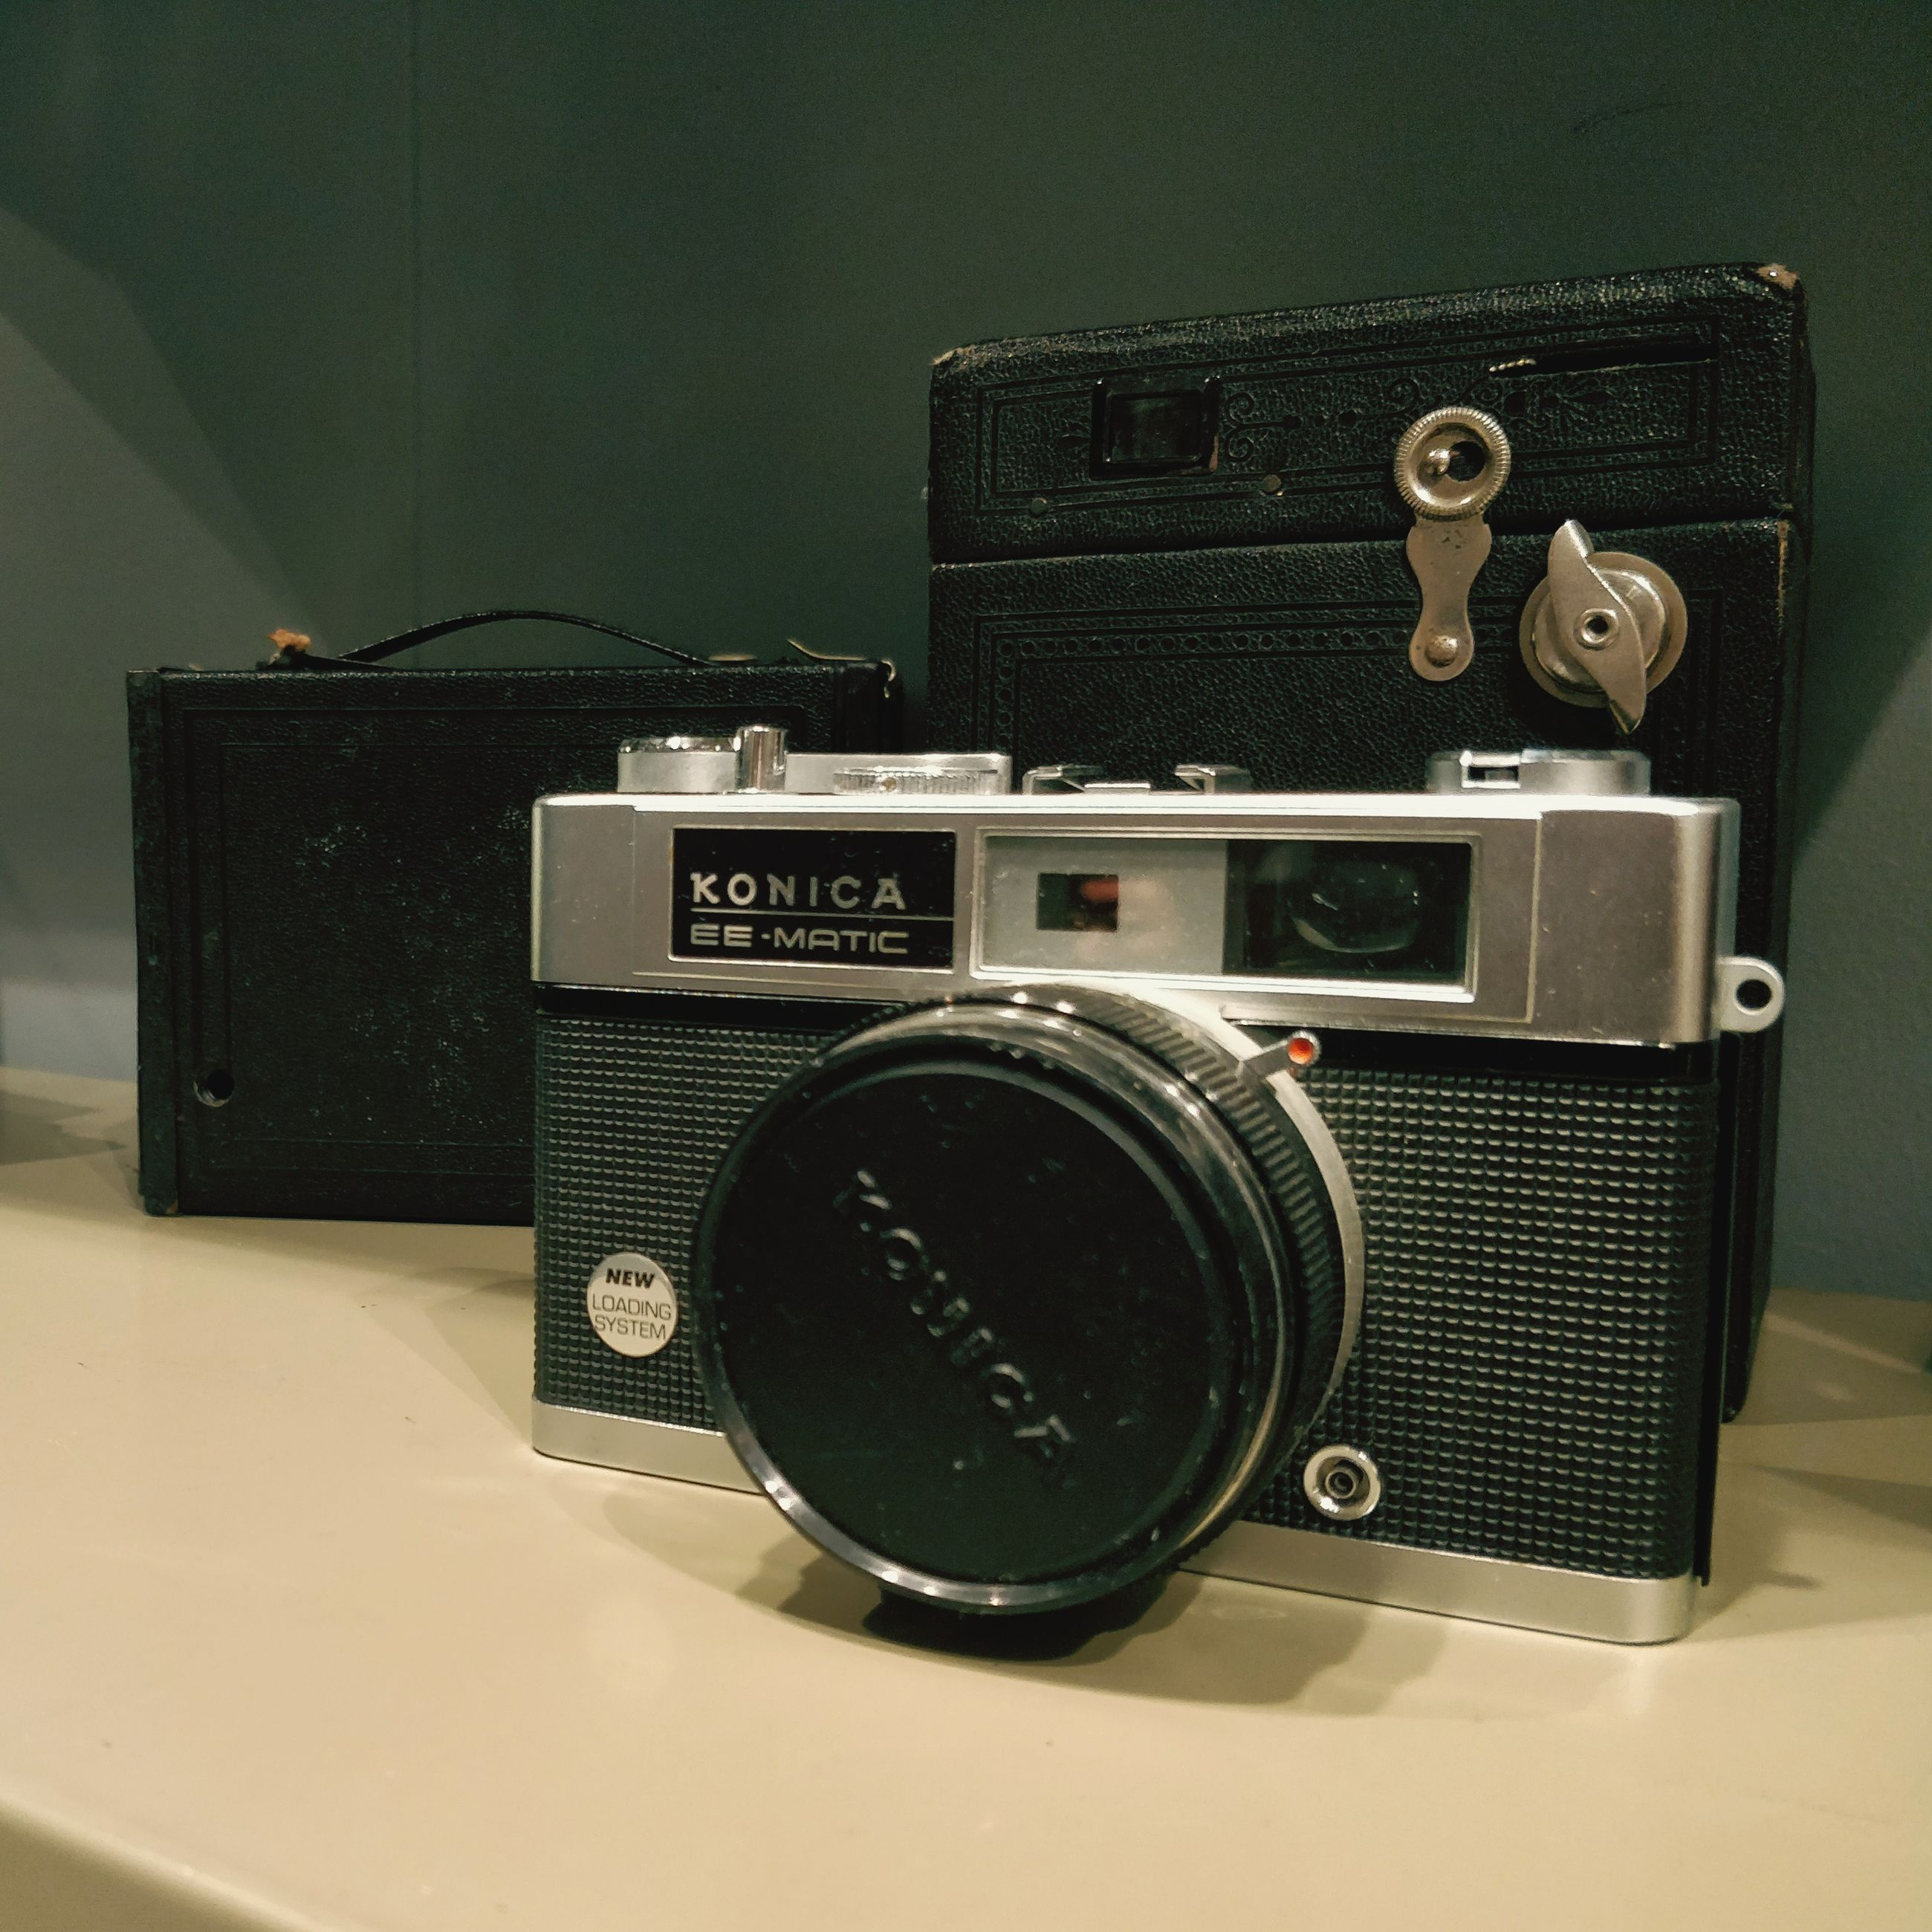 retro styled, old-fashioned, camera - photographic equipment, old, antique, no people, indoors, technology, table, vintage, photography themes, close-up, arts culture and entertainment, stereo, movie camera, camera flash, day